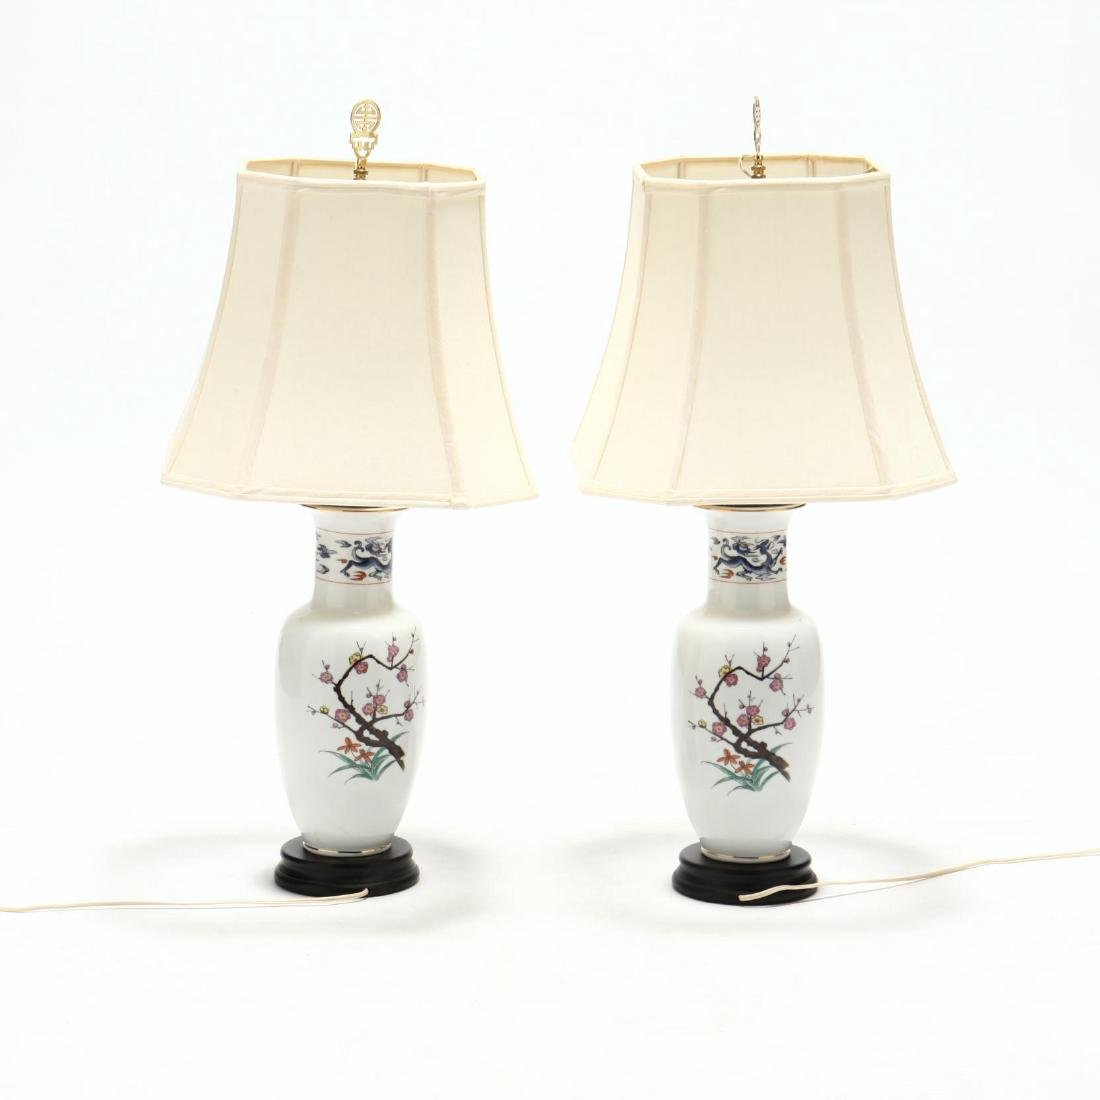 Pair of Chinese Export Style Porcelain Table Lamps - 2